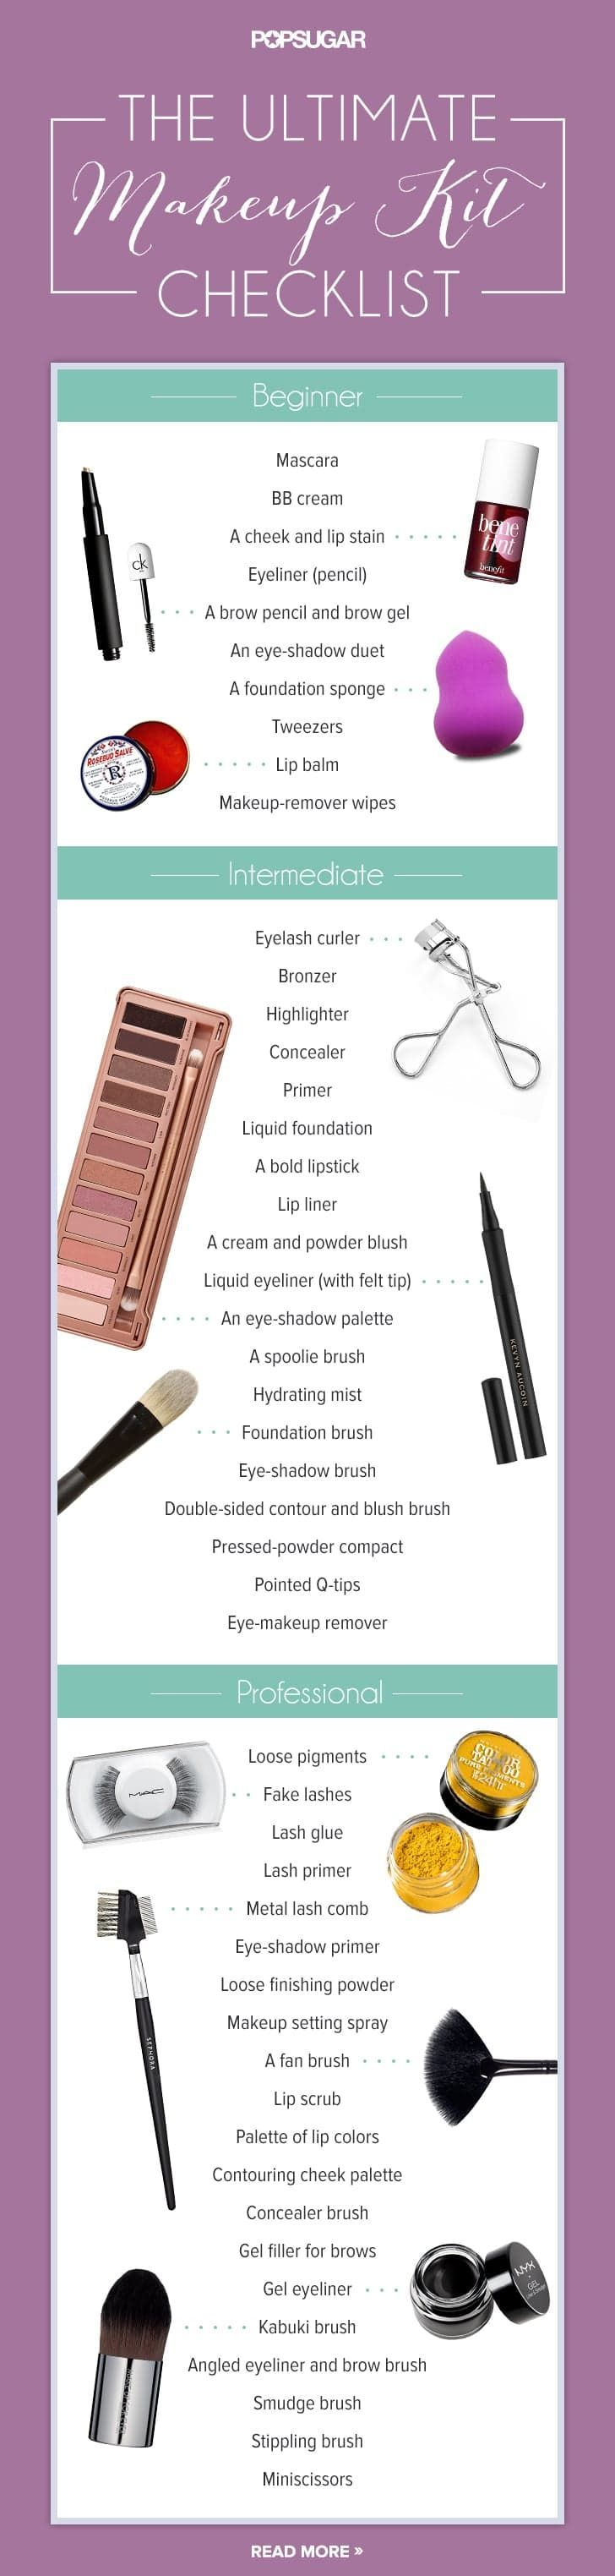 Pin for Later: The Makeup Items Every Woman Needs to Add to Her Kit